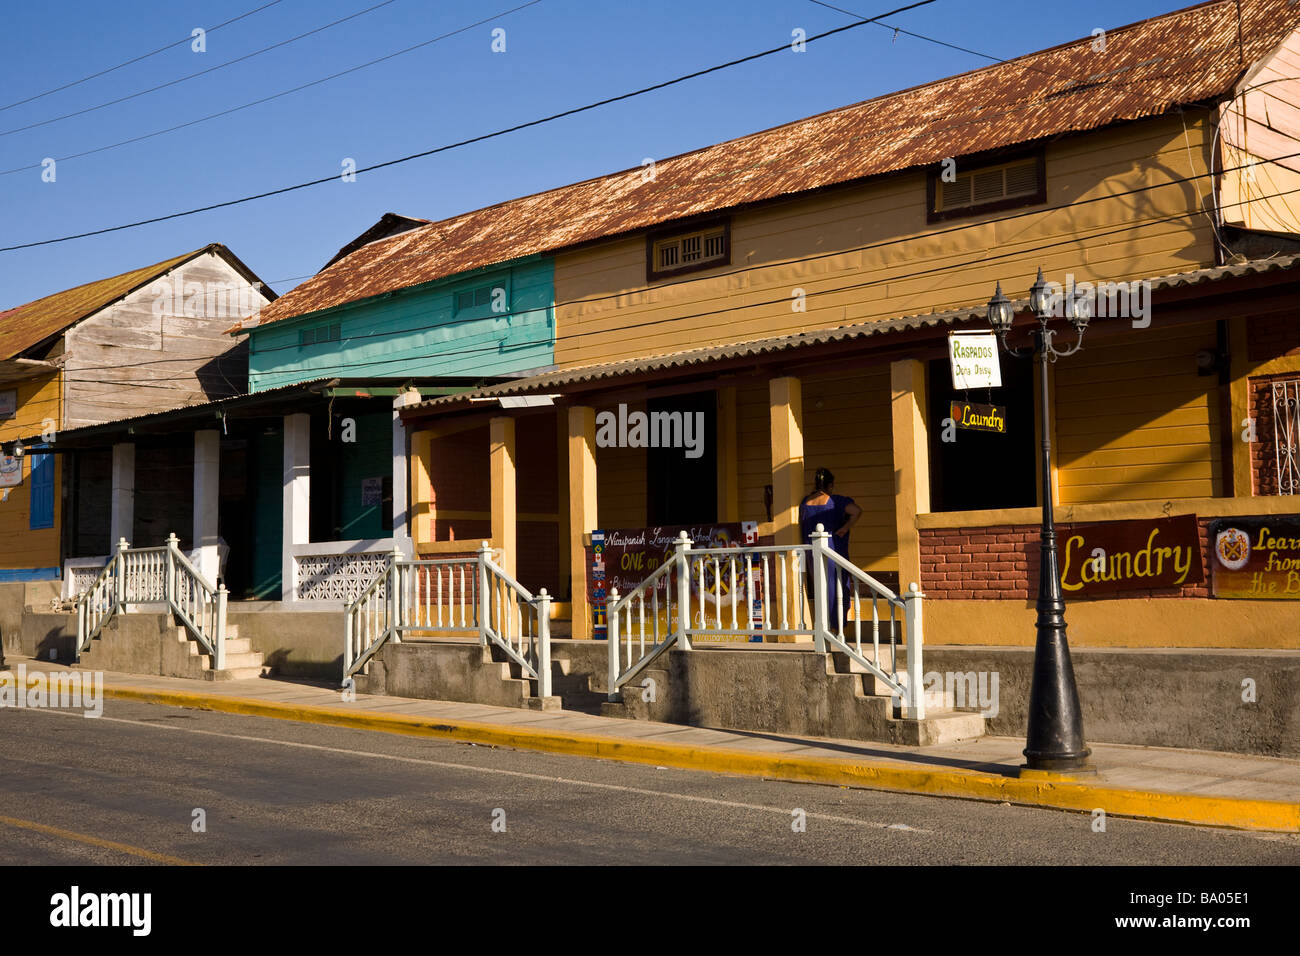 Storefronts Storefront Buildings Stock Photos & Storefronts ...